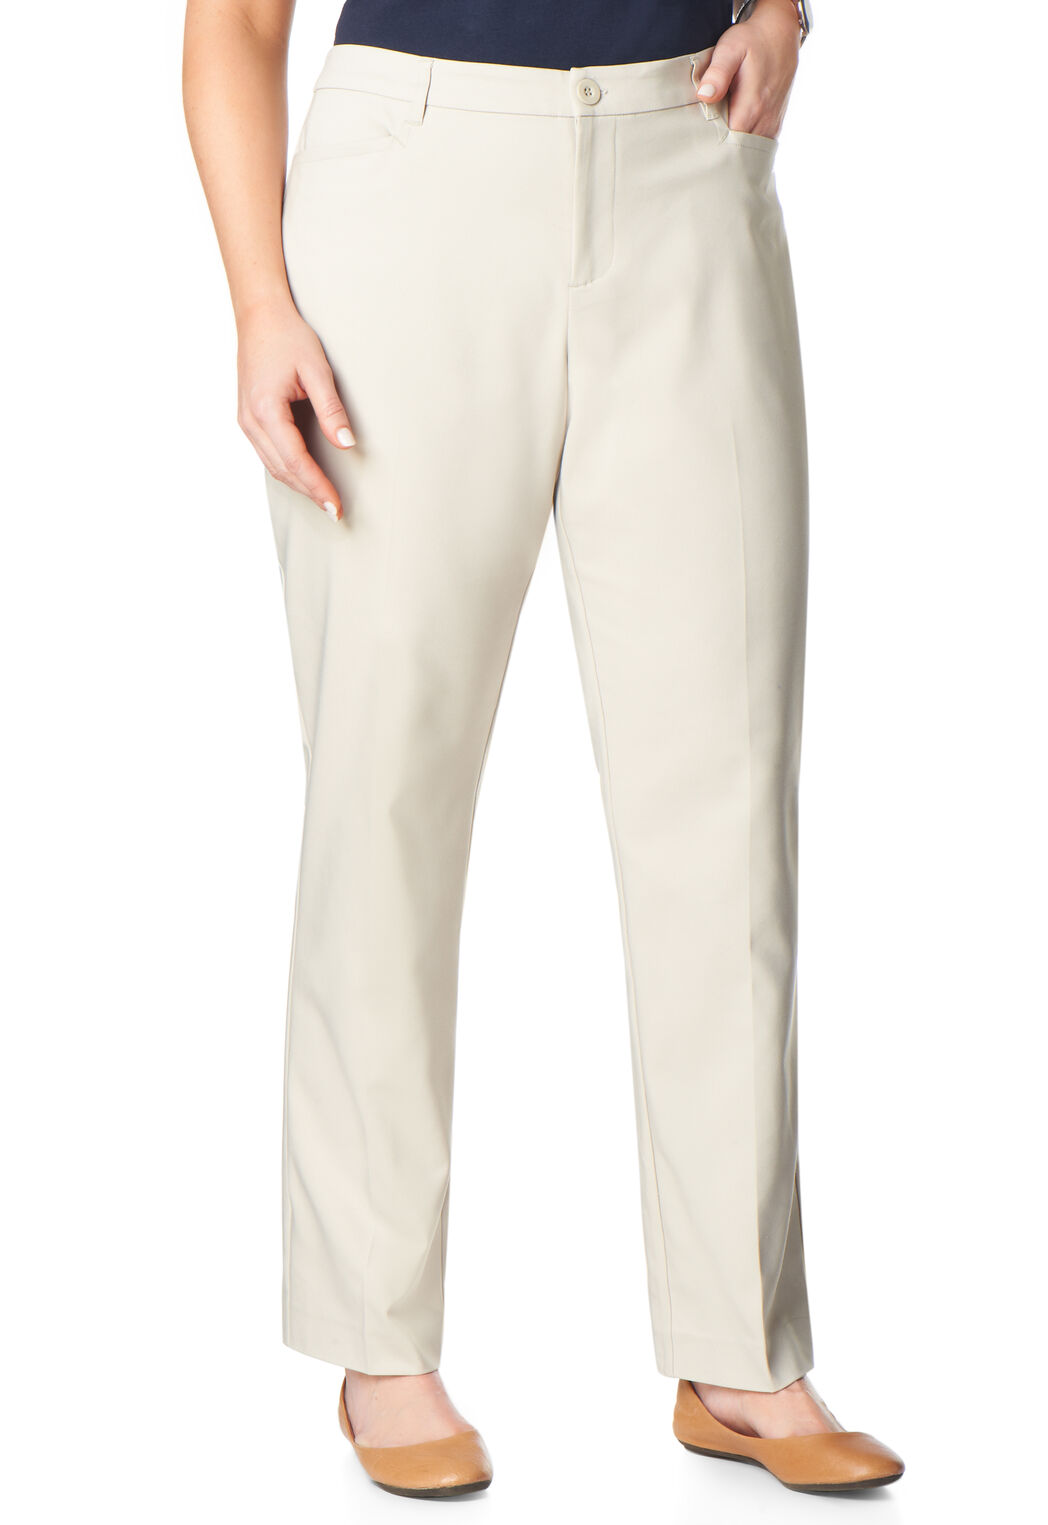 855c3a860927e ... Plus Size Pant Tall. Previous. add to wish list · add to wish list